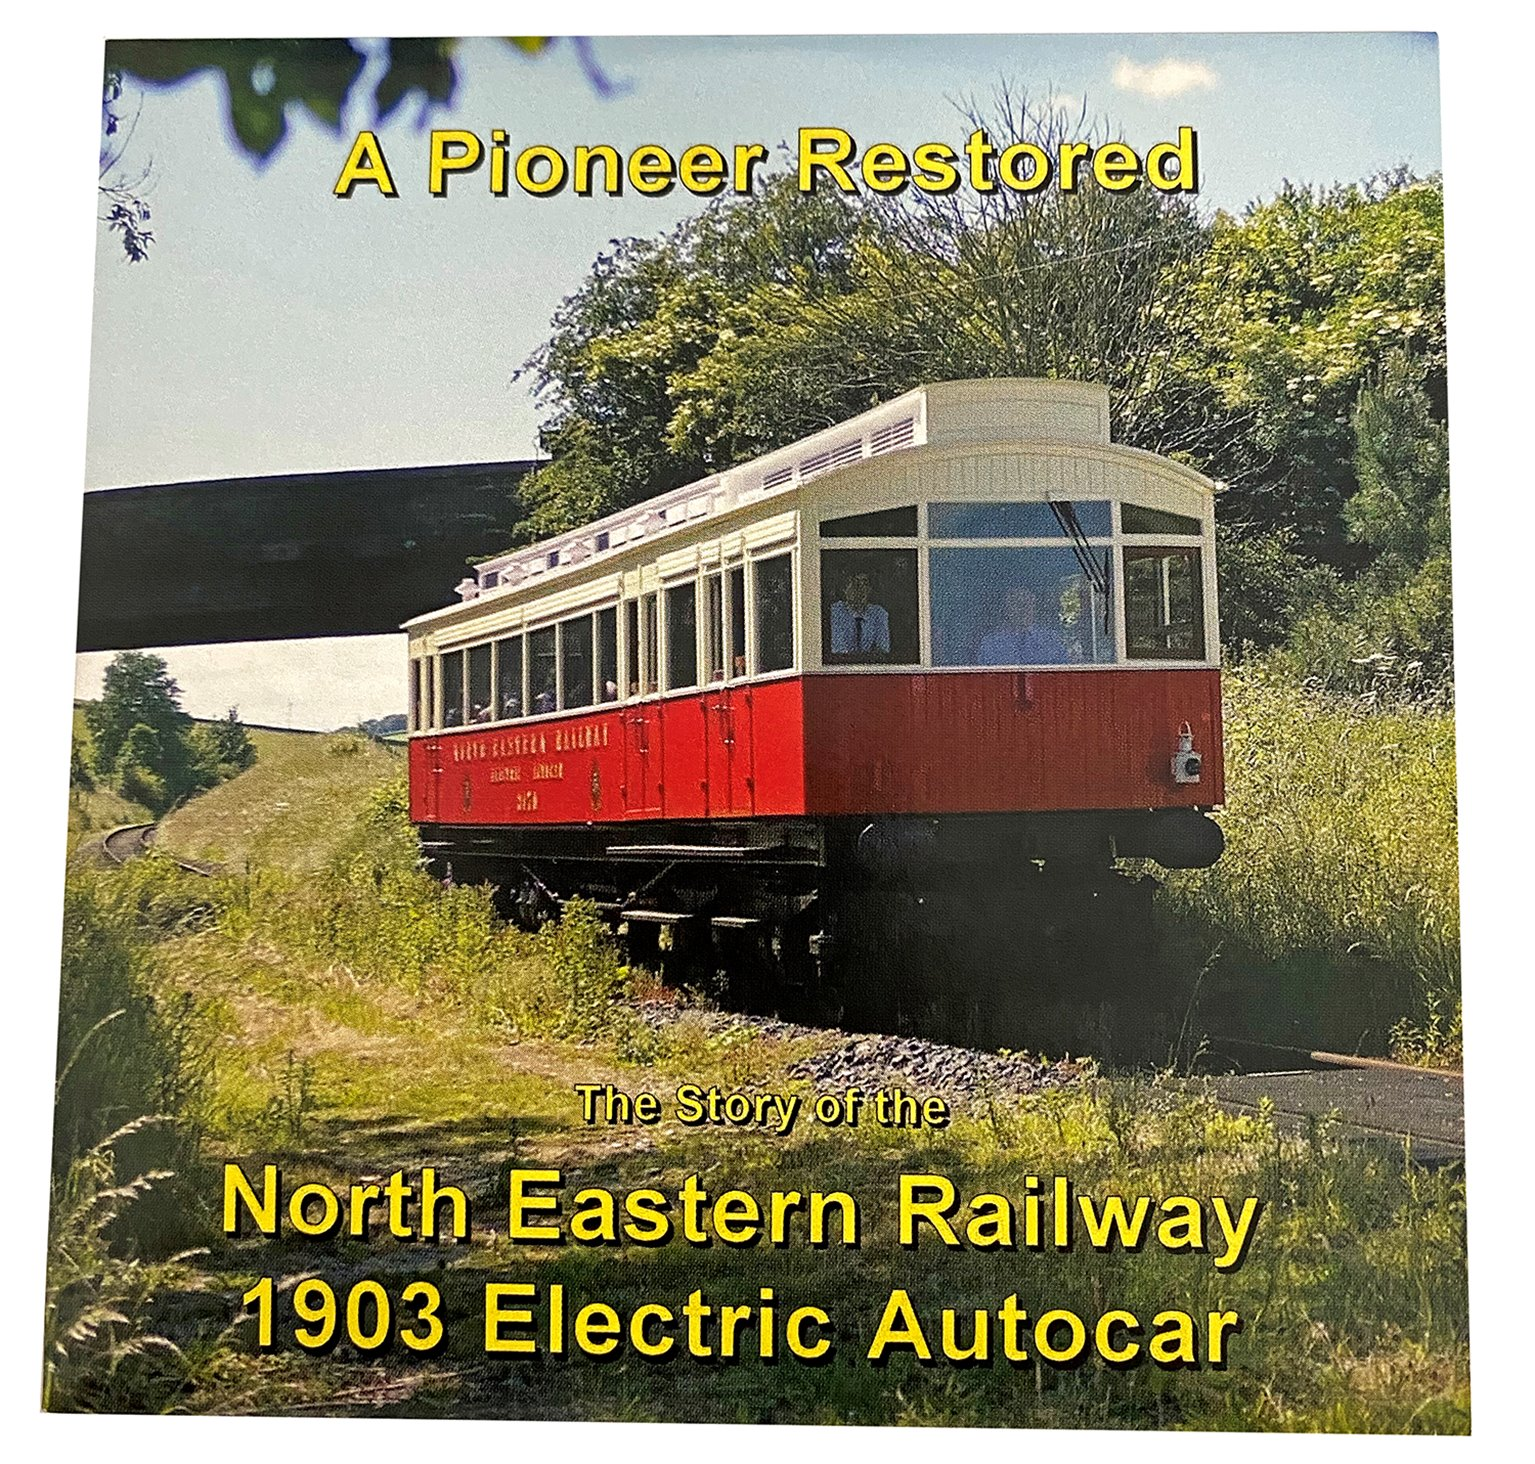 A Pioneer Restored - The Story of the North Eastern Railway 1903 Electric Autocar DVD